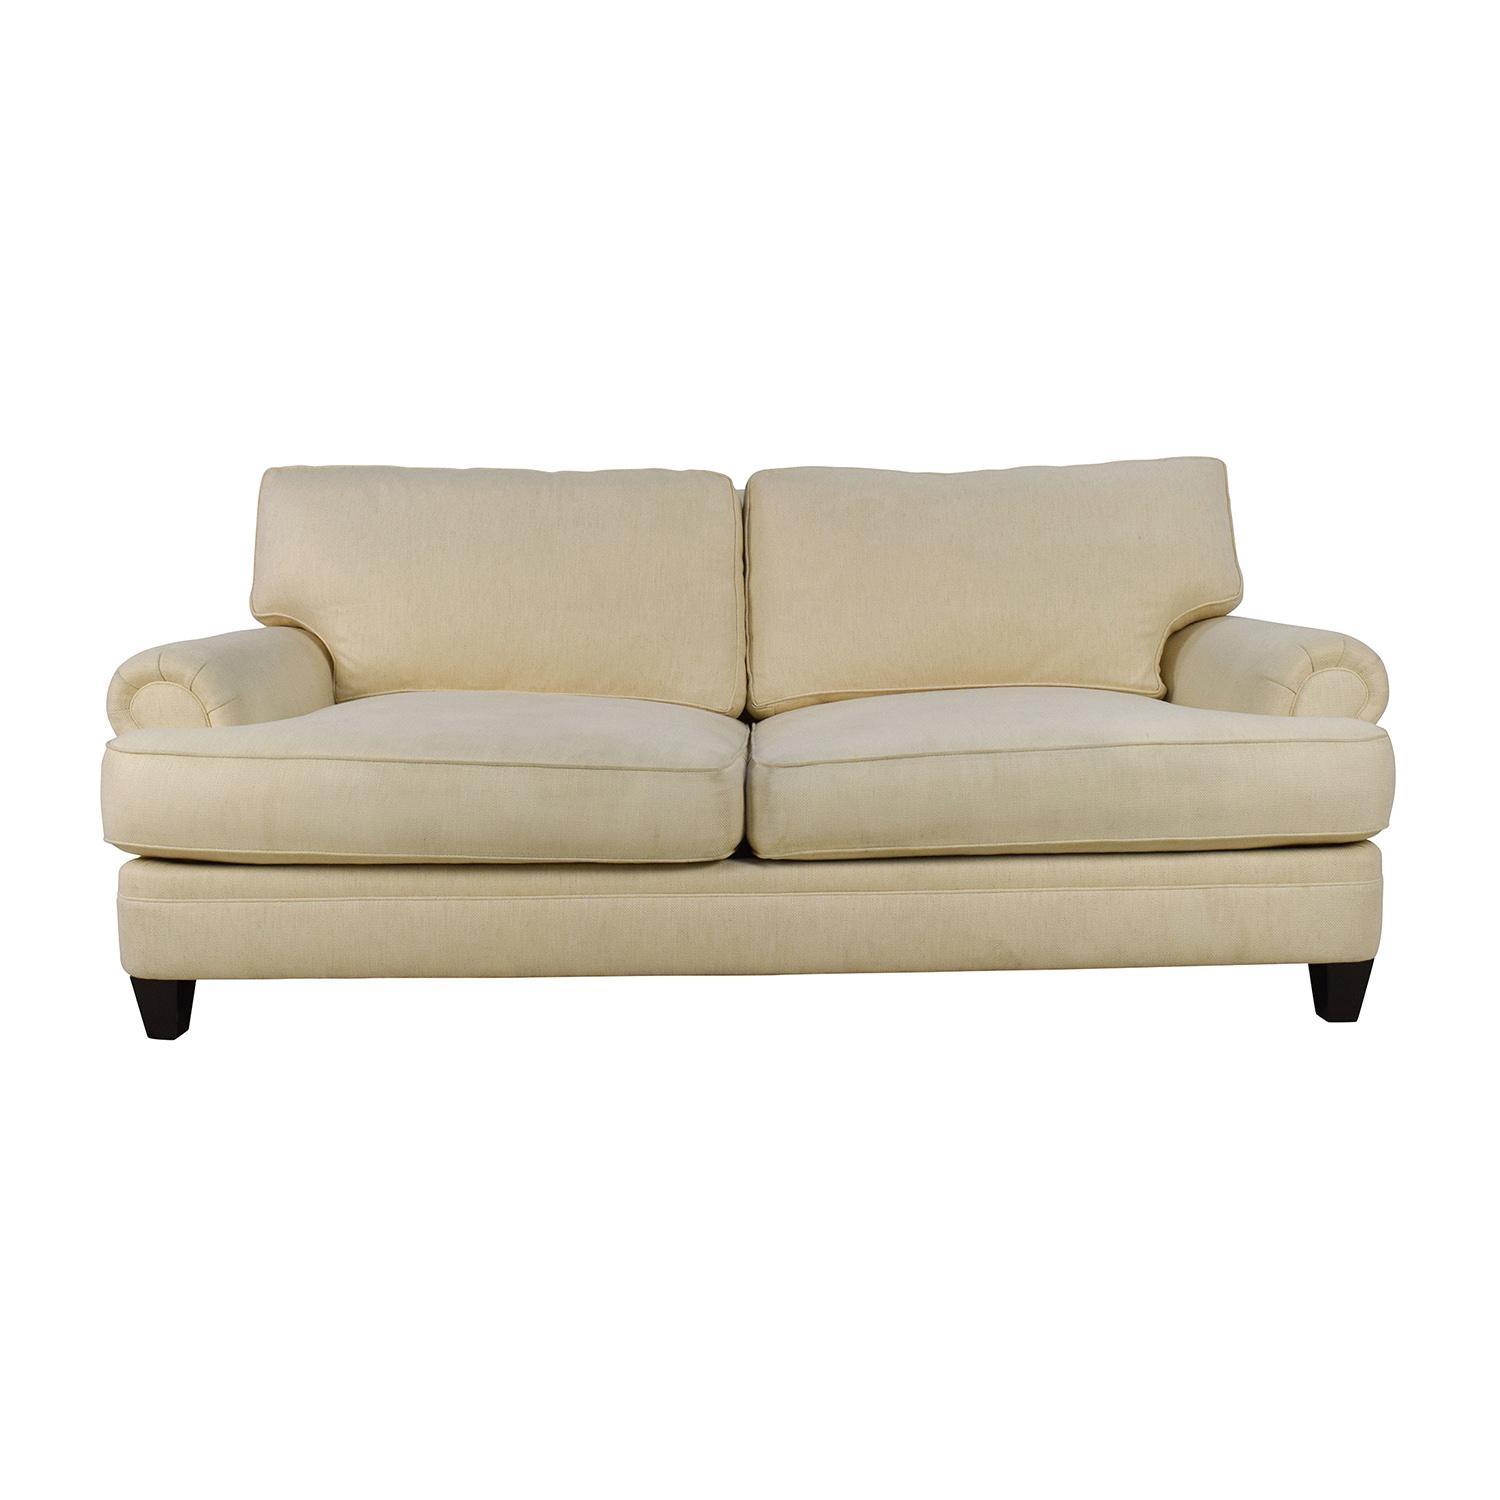 Featured Image of Short Sofas